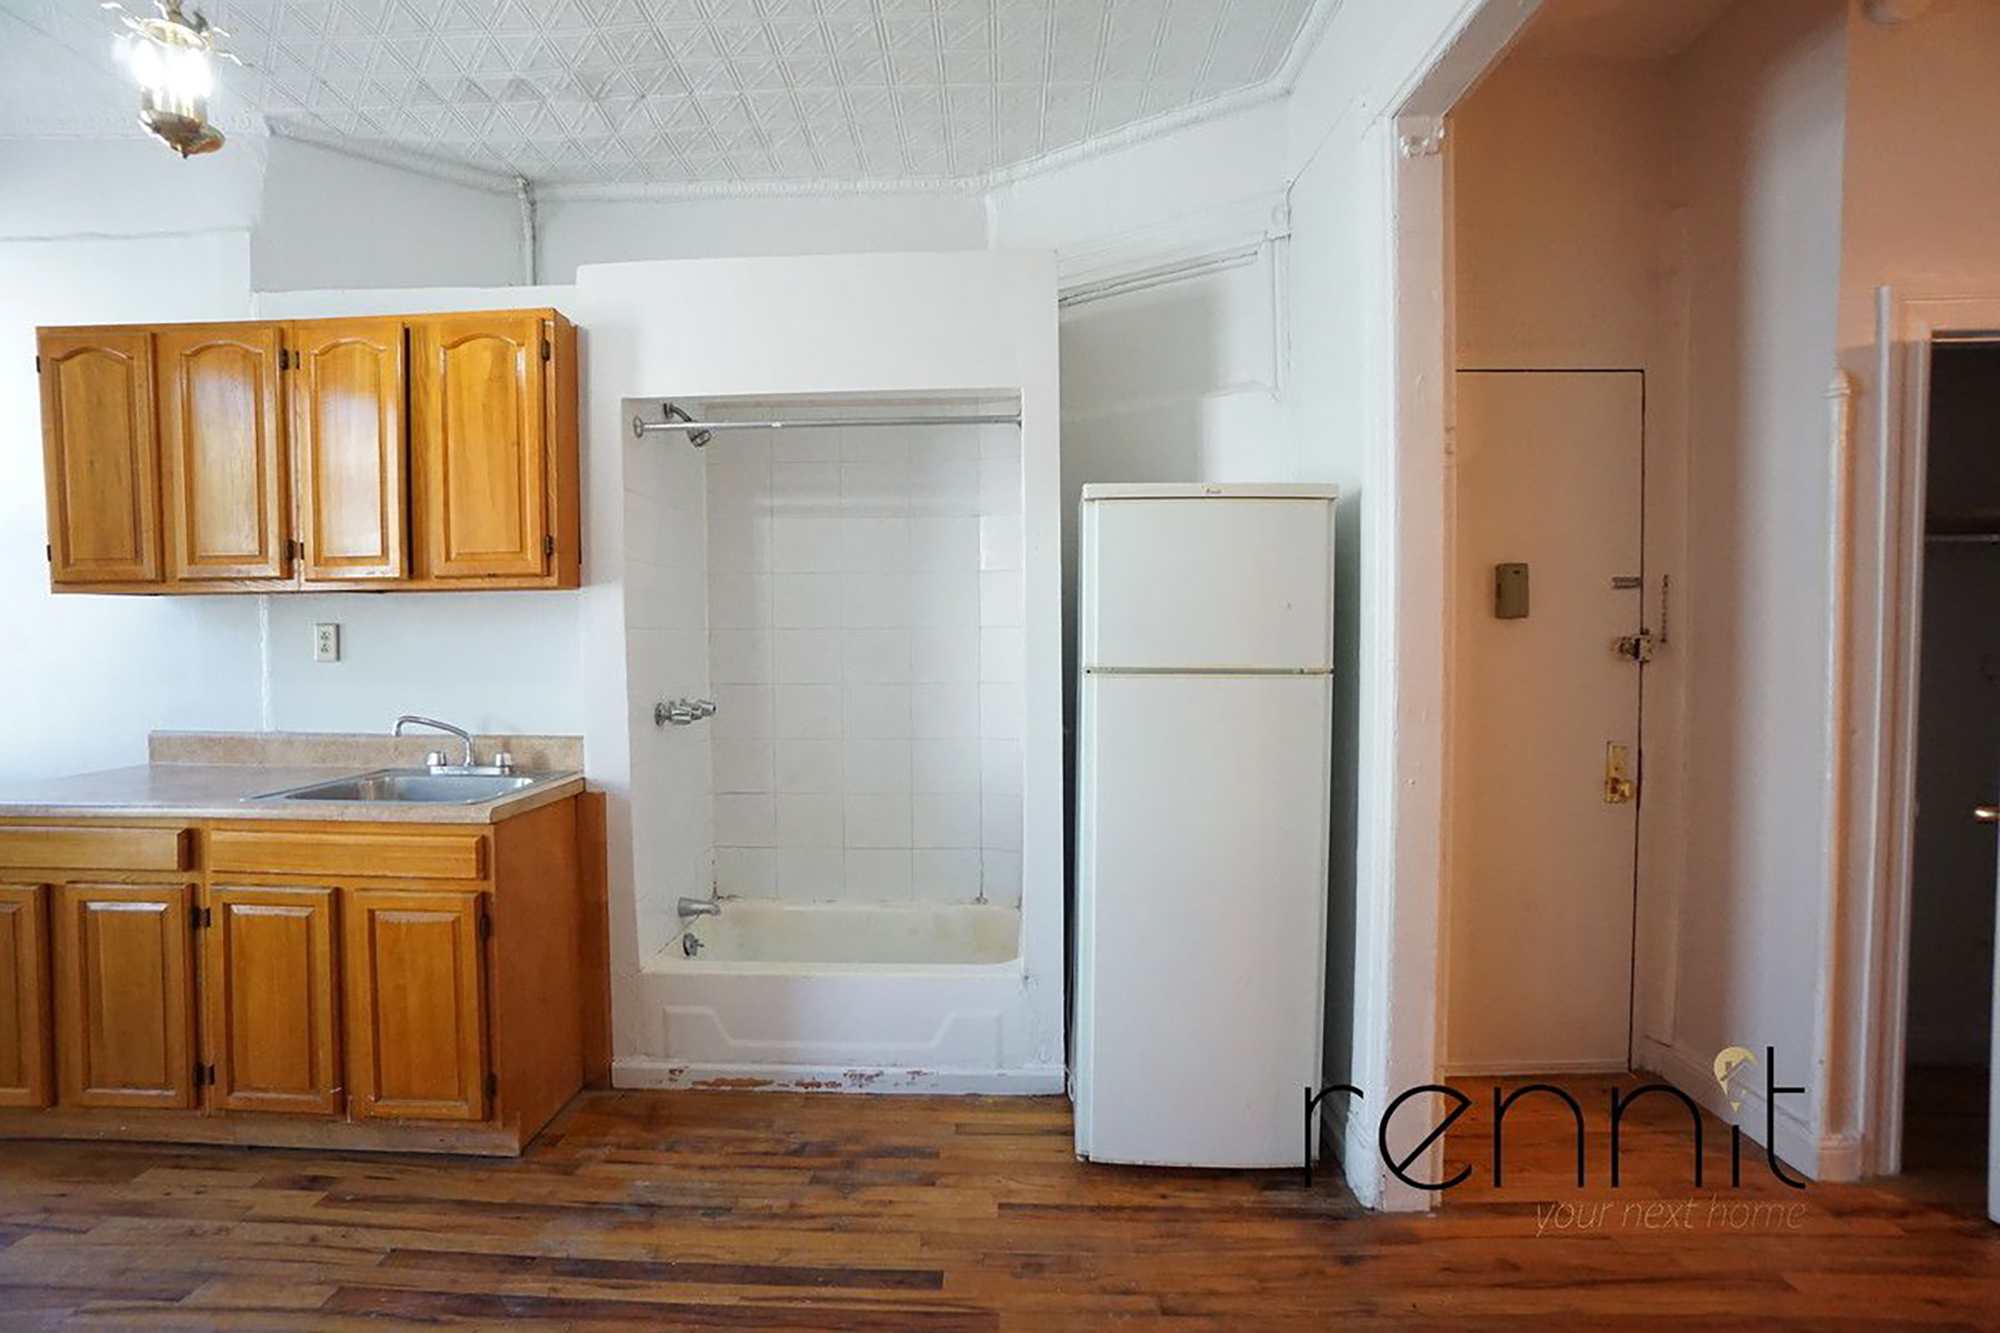 NYC apartment with shower in kitchen rents for $1,650 a month